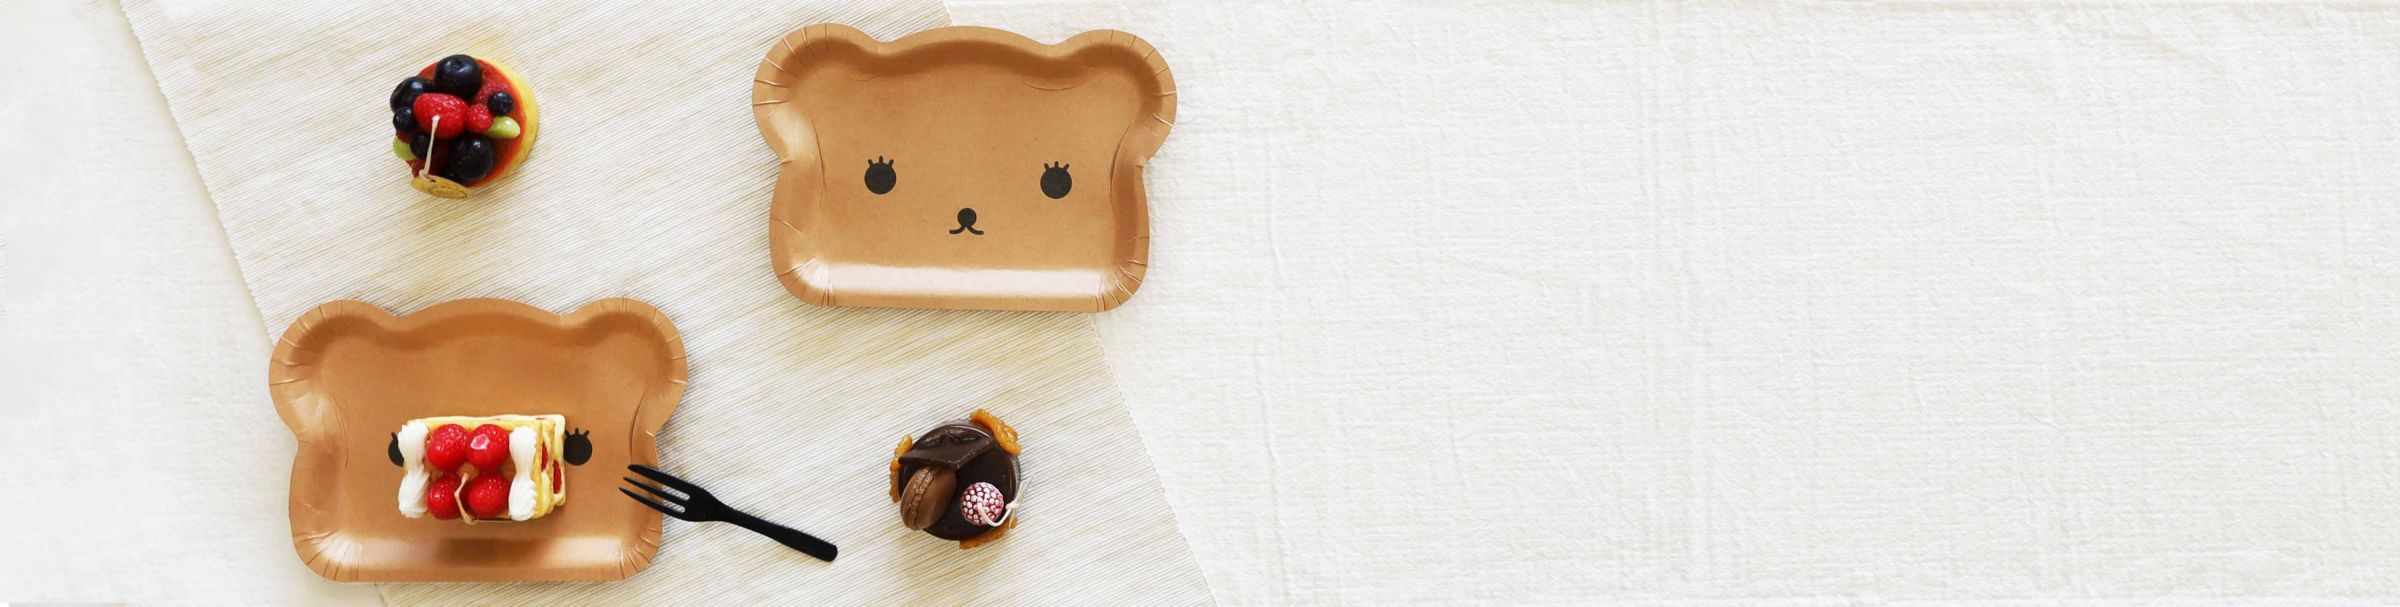 Cute Bear Cake Plate Eat dessert or cakes are handly Enjoy the Tea Time